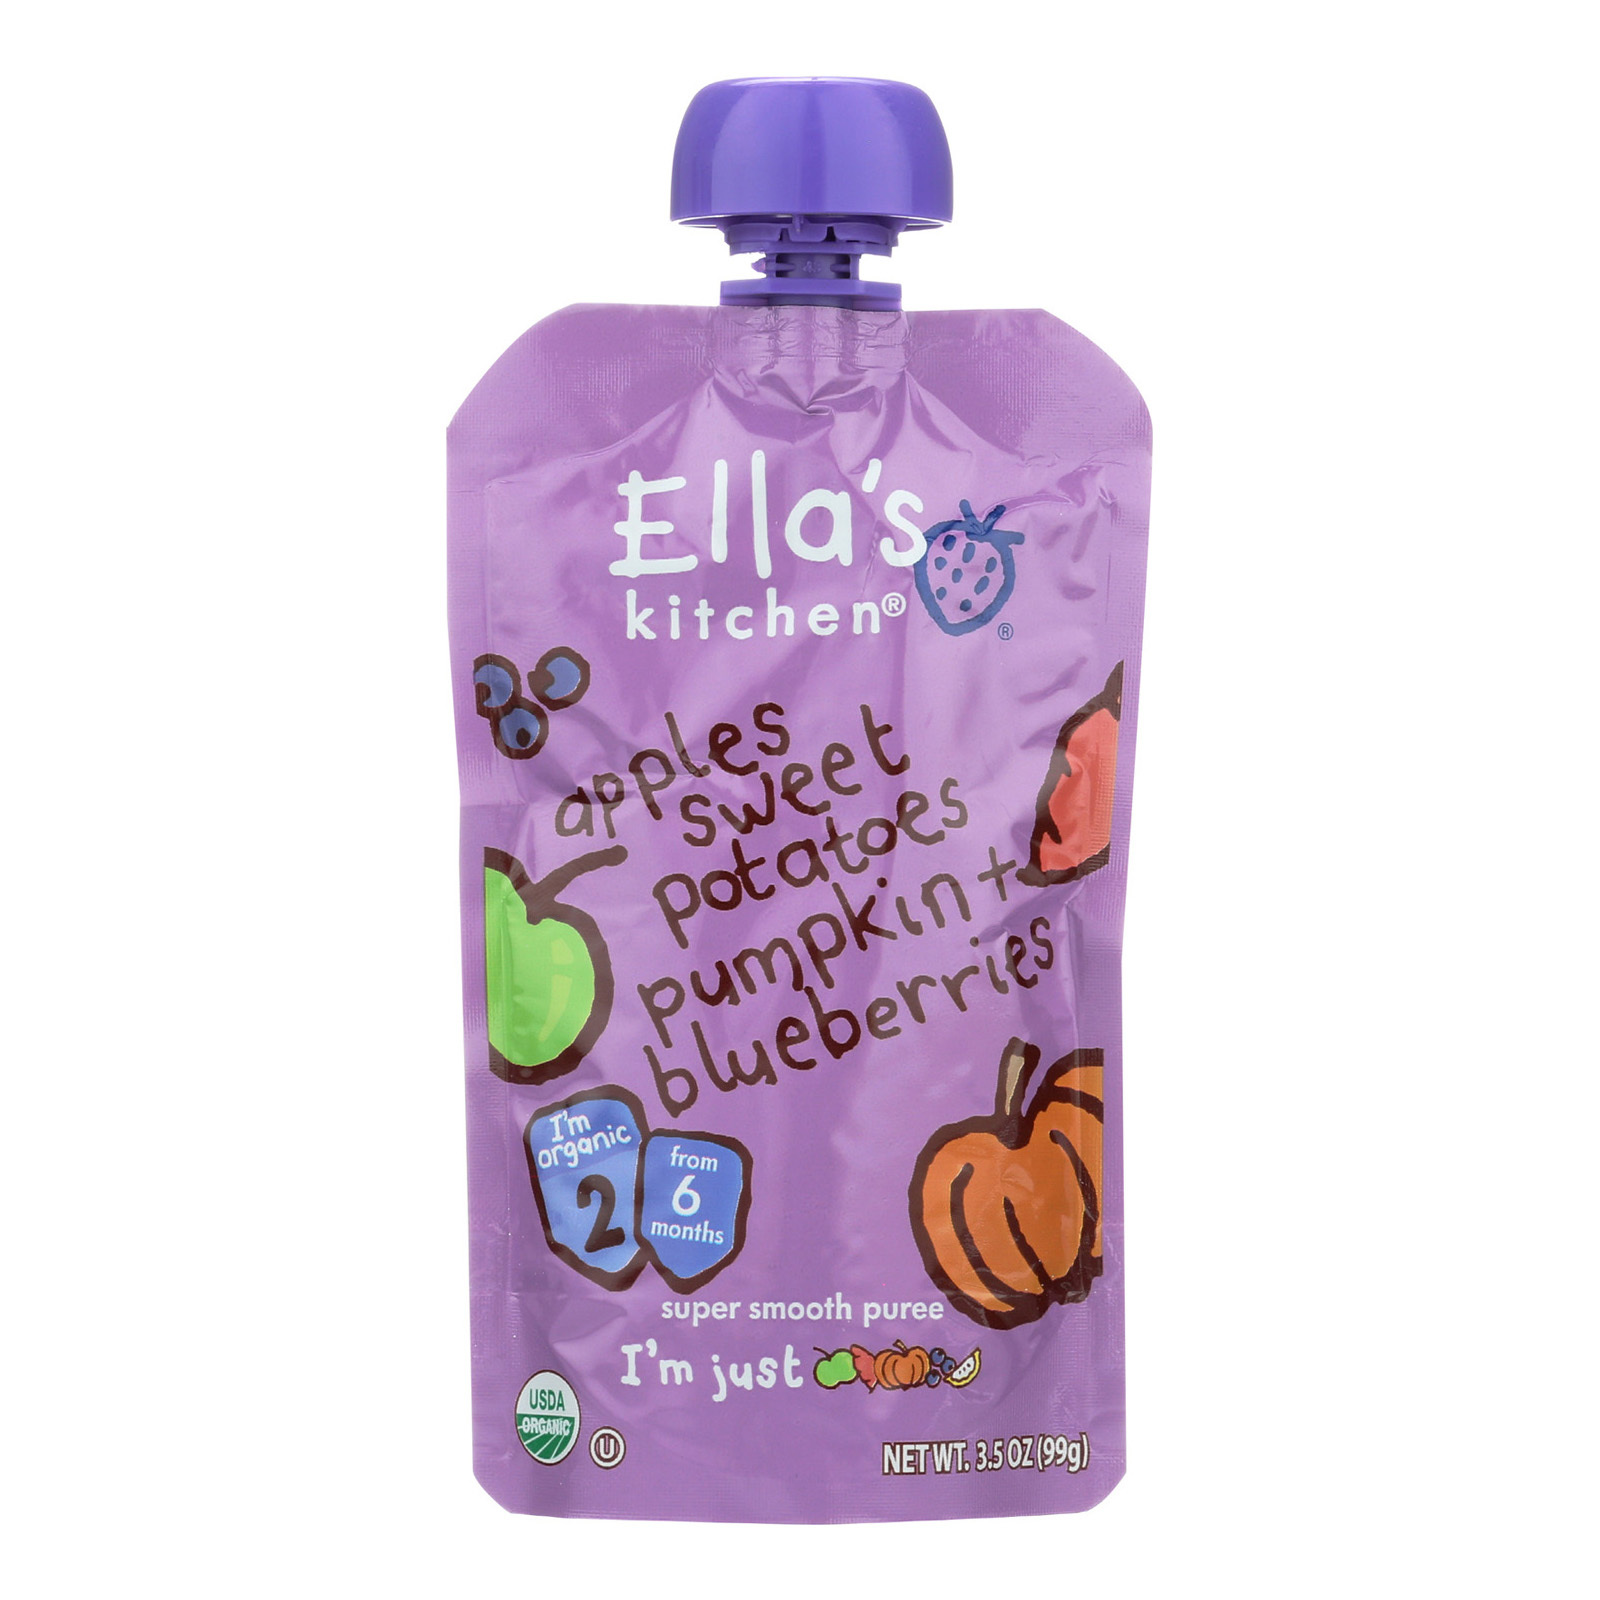 Ella's Kitchen Baby Food - Apples, Sweet Potatoes, Pumpkin and Blueberries - Case of 12 - 3.5 oz.